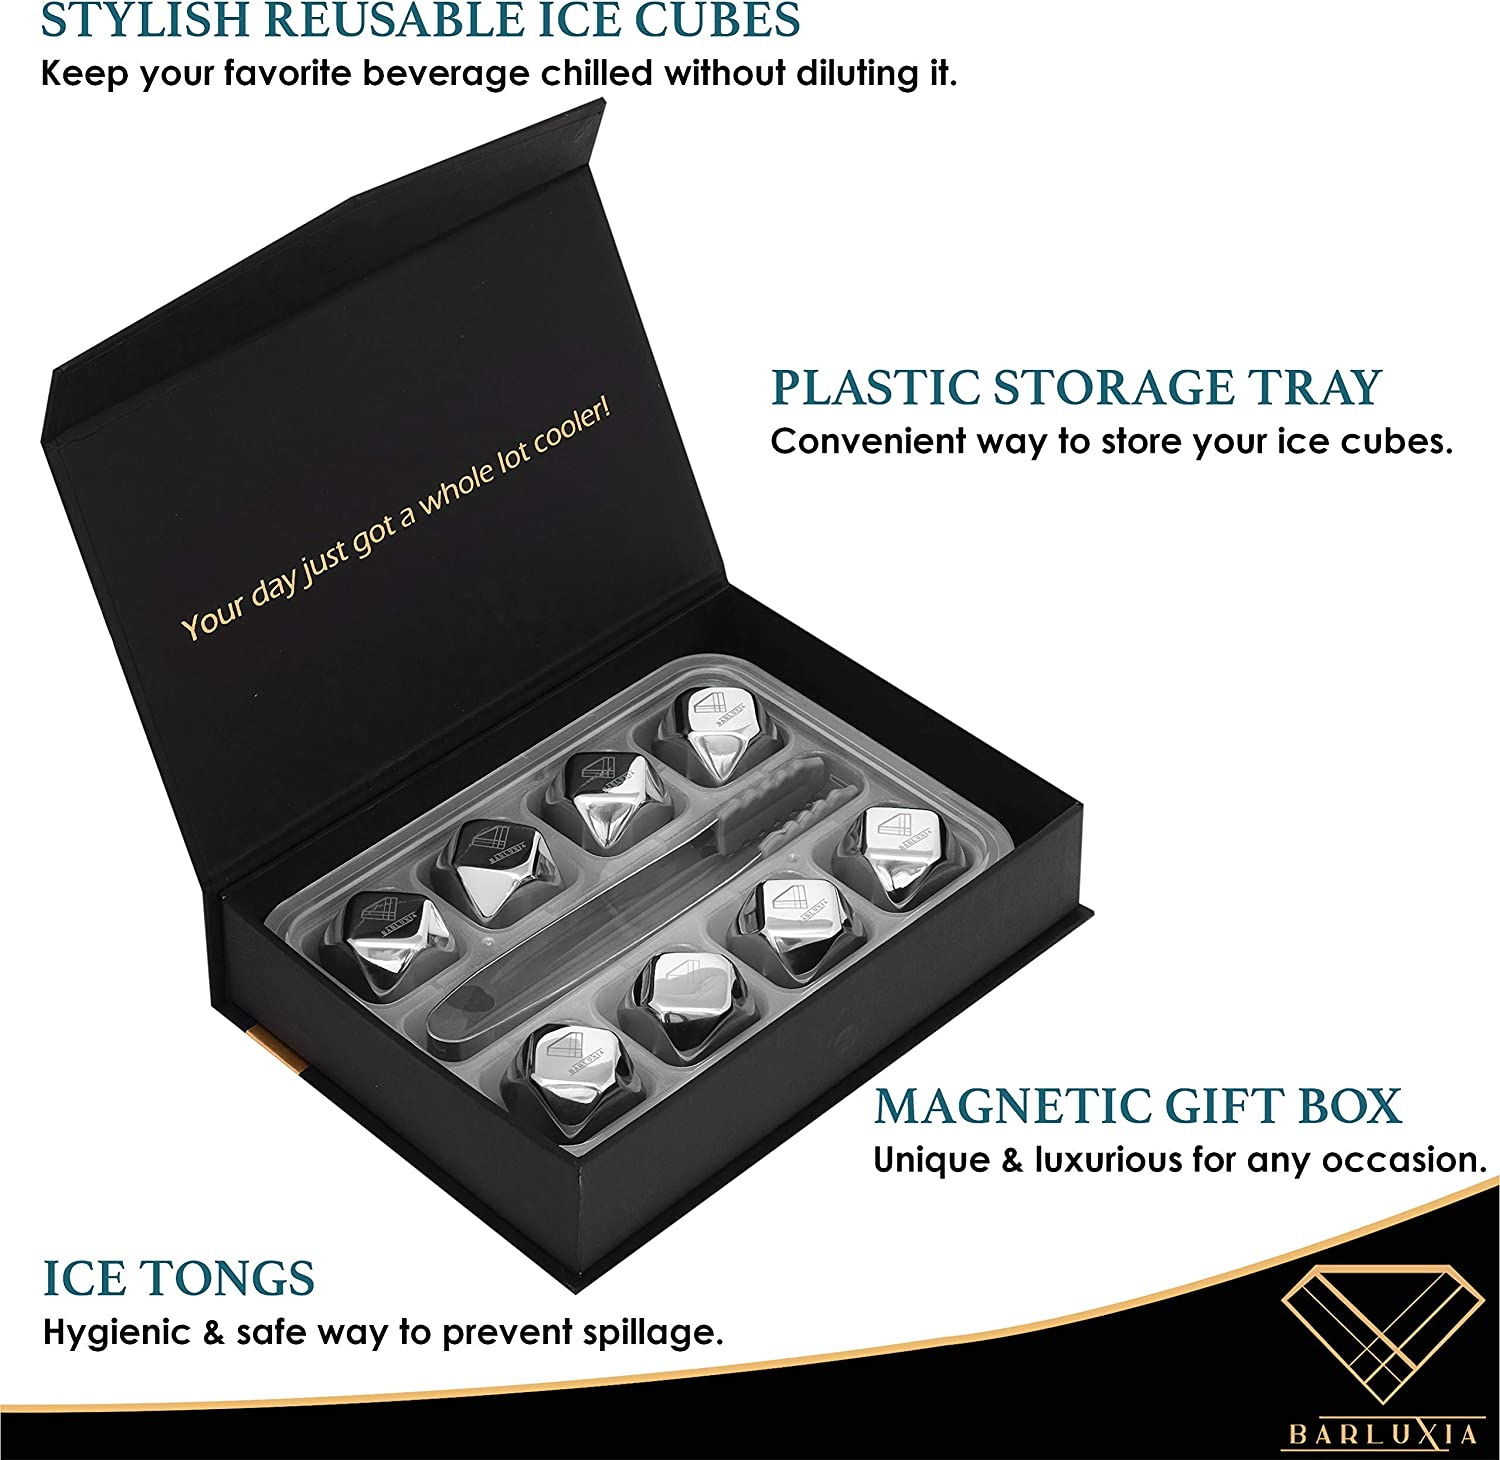 DERGUAM 8 Packs Fast-cooling 304 Stainless Steel Ice Cubes Whiskey Stones Whiskey Rocks With Nonslip Ice Tong/&Wine Opener/&Freezer Storage Tray Great for Whiskey,Wine,Beer,Juice or Soda